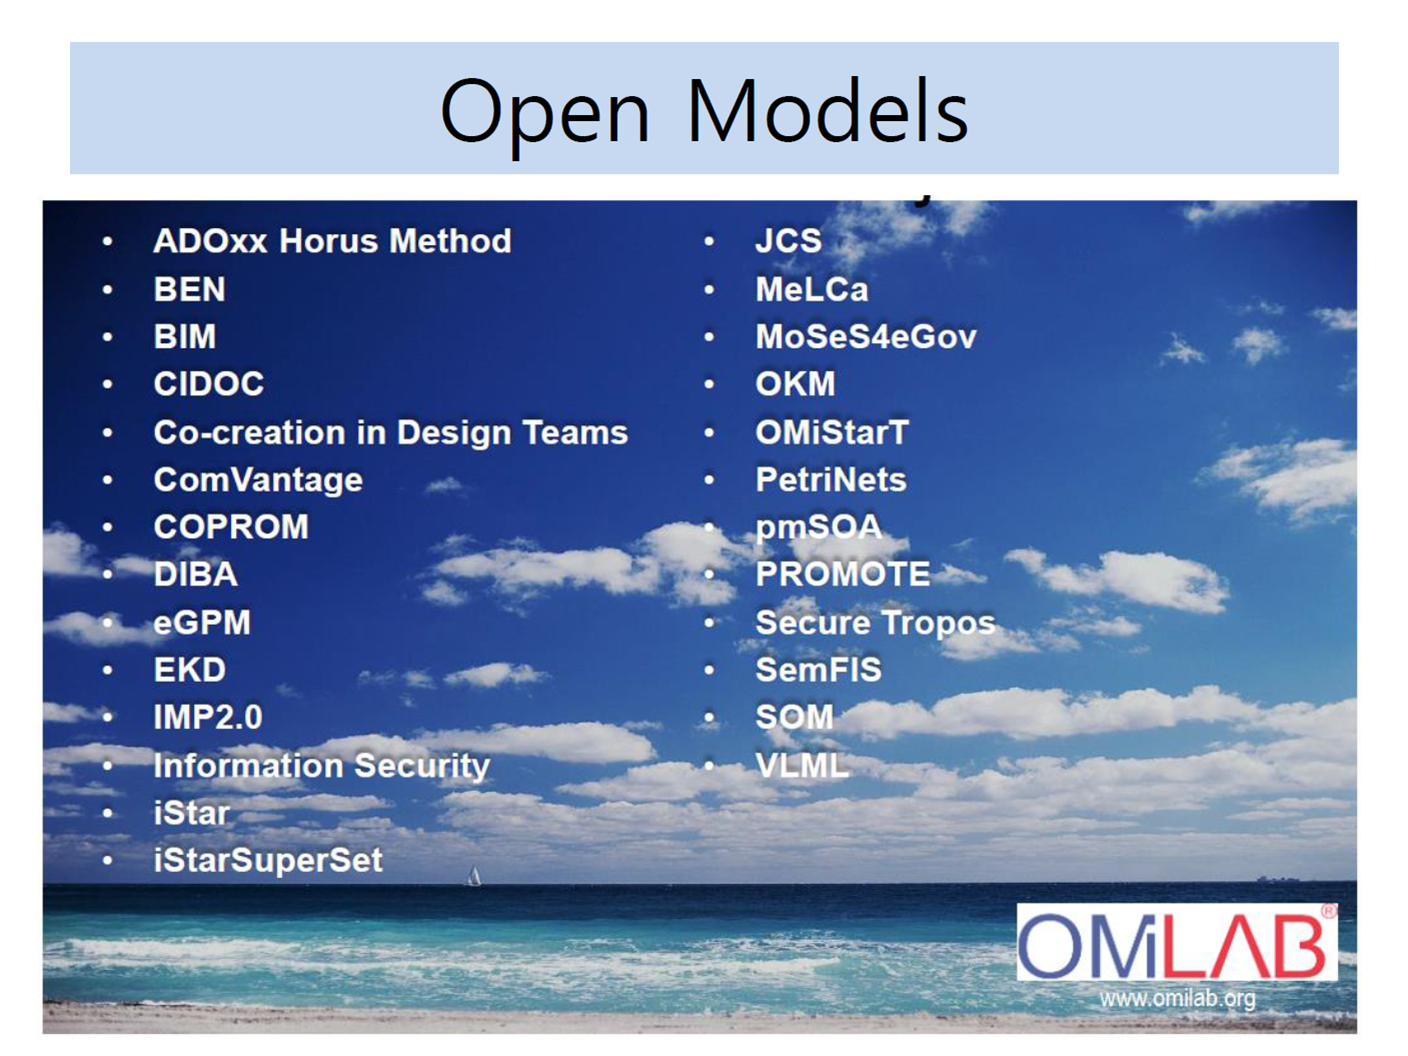 Open Models-1.png